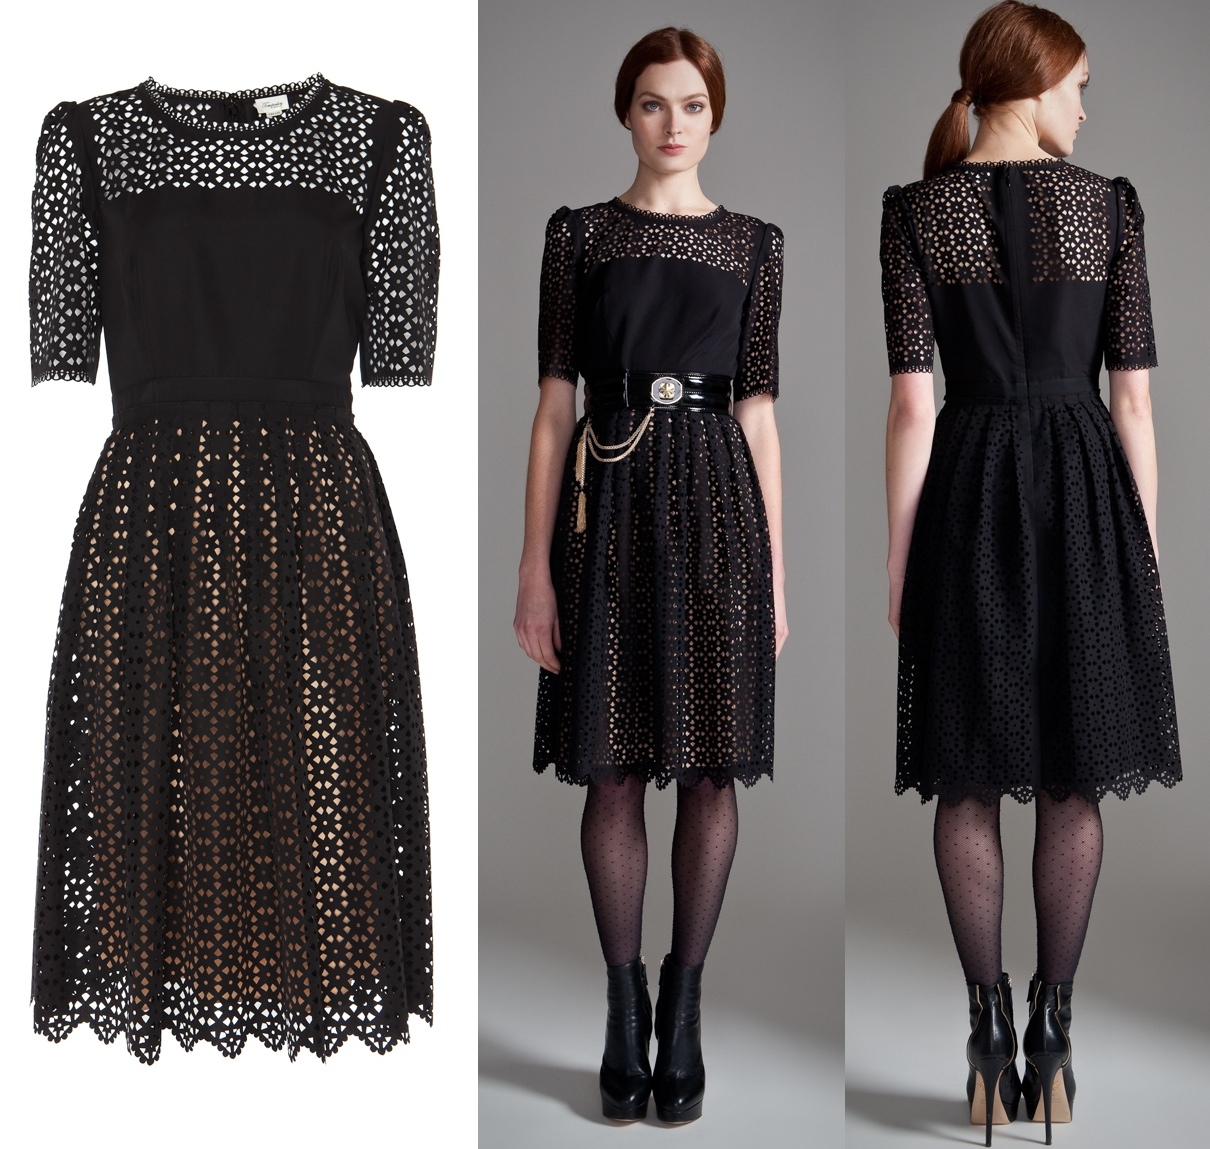 Temperley 'Templeton' via Lyst.com